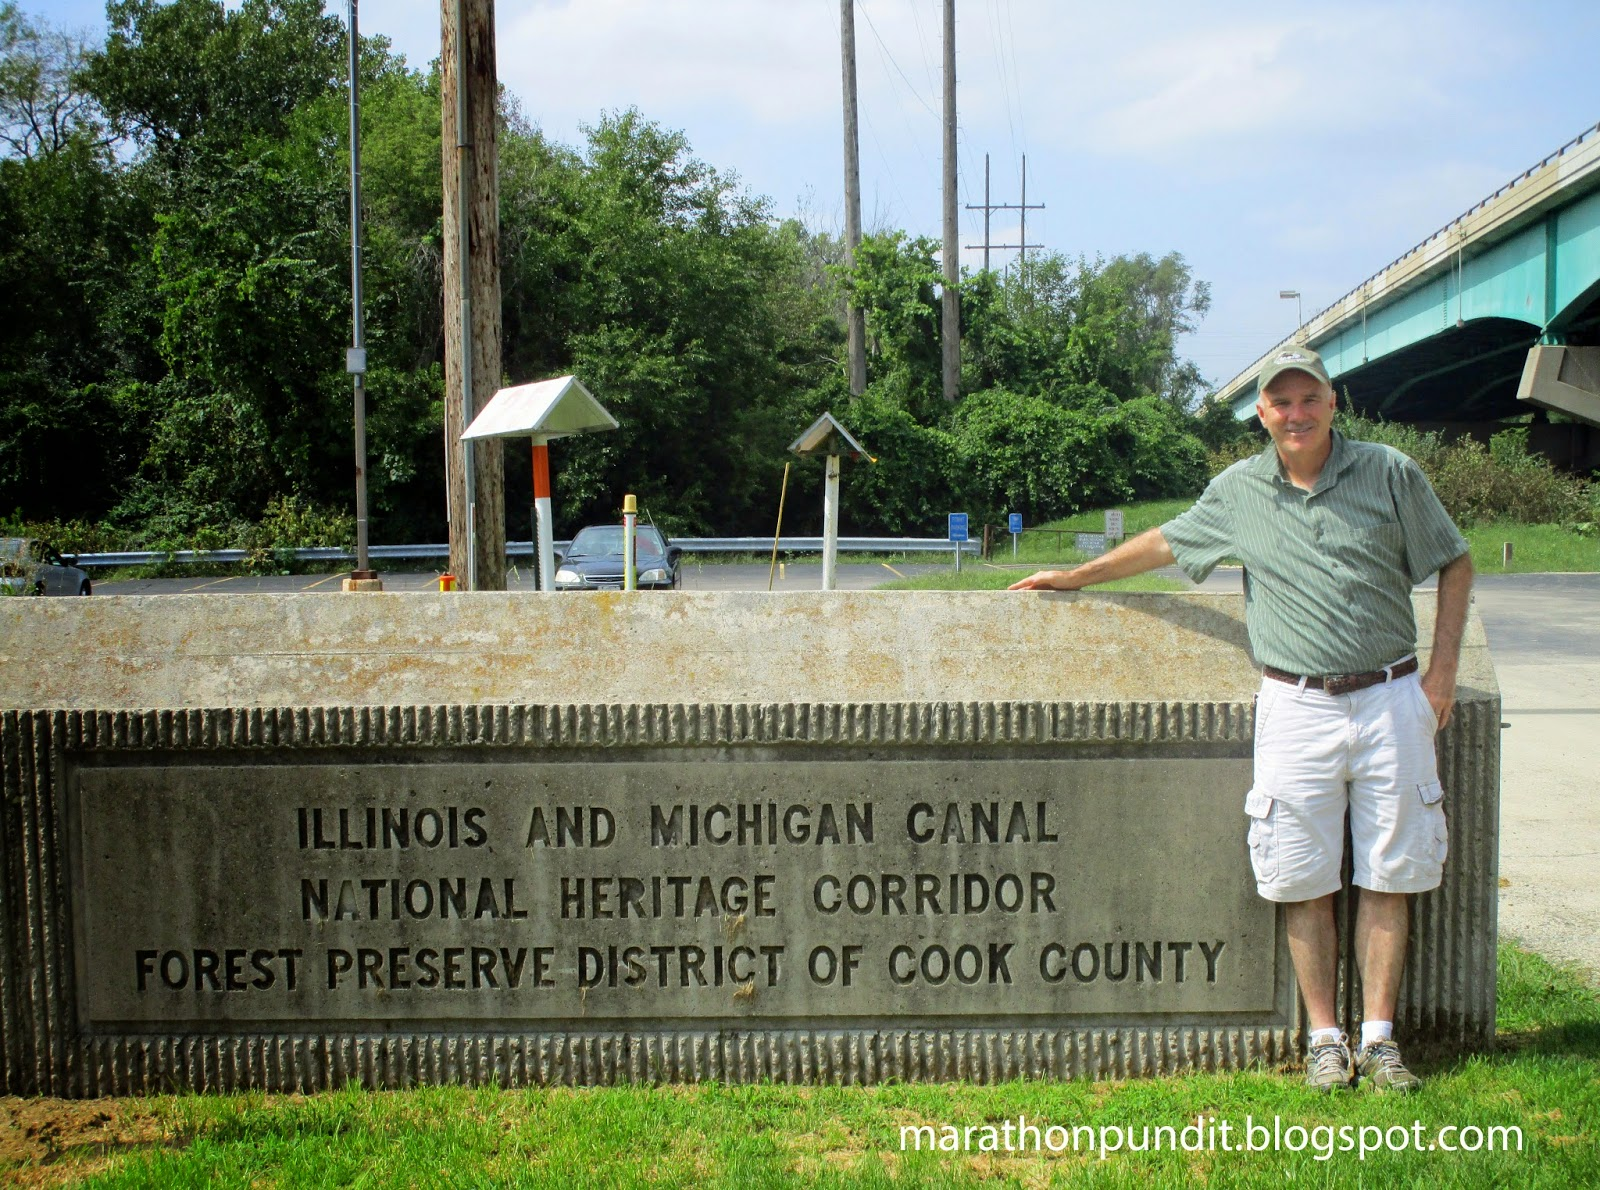 North Park Vw >> Marathon Pundit: (Photos) Illinois & Michigan Canal National Heritage Corridor on its 30th birthday